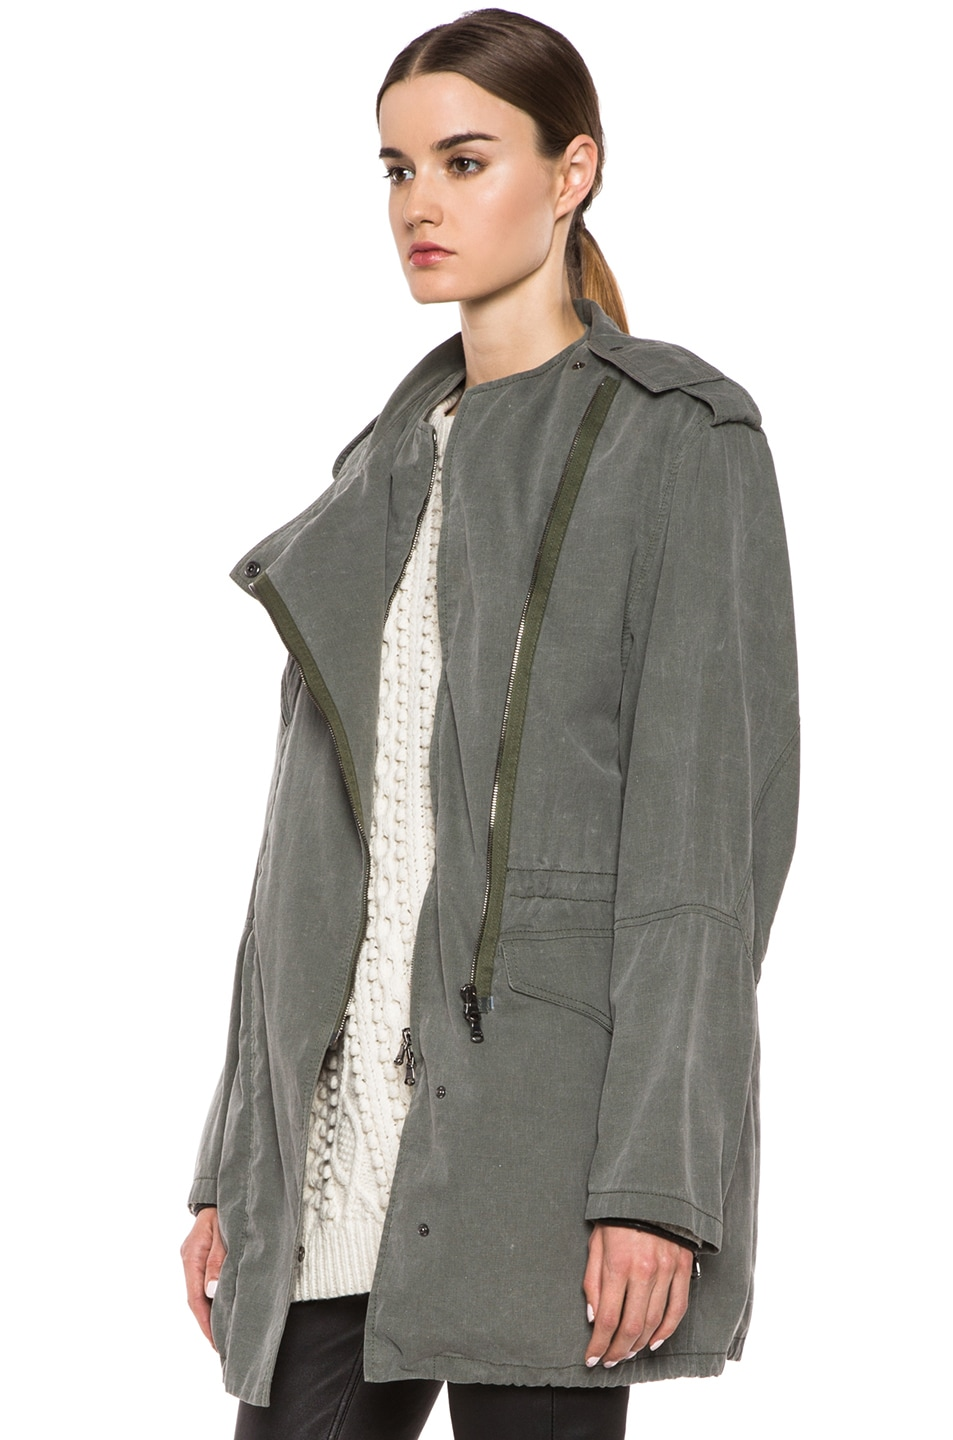 Image 3 of 3.1 phillip lim Trompl'eoil Cotton Layered Parka in Army Green